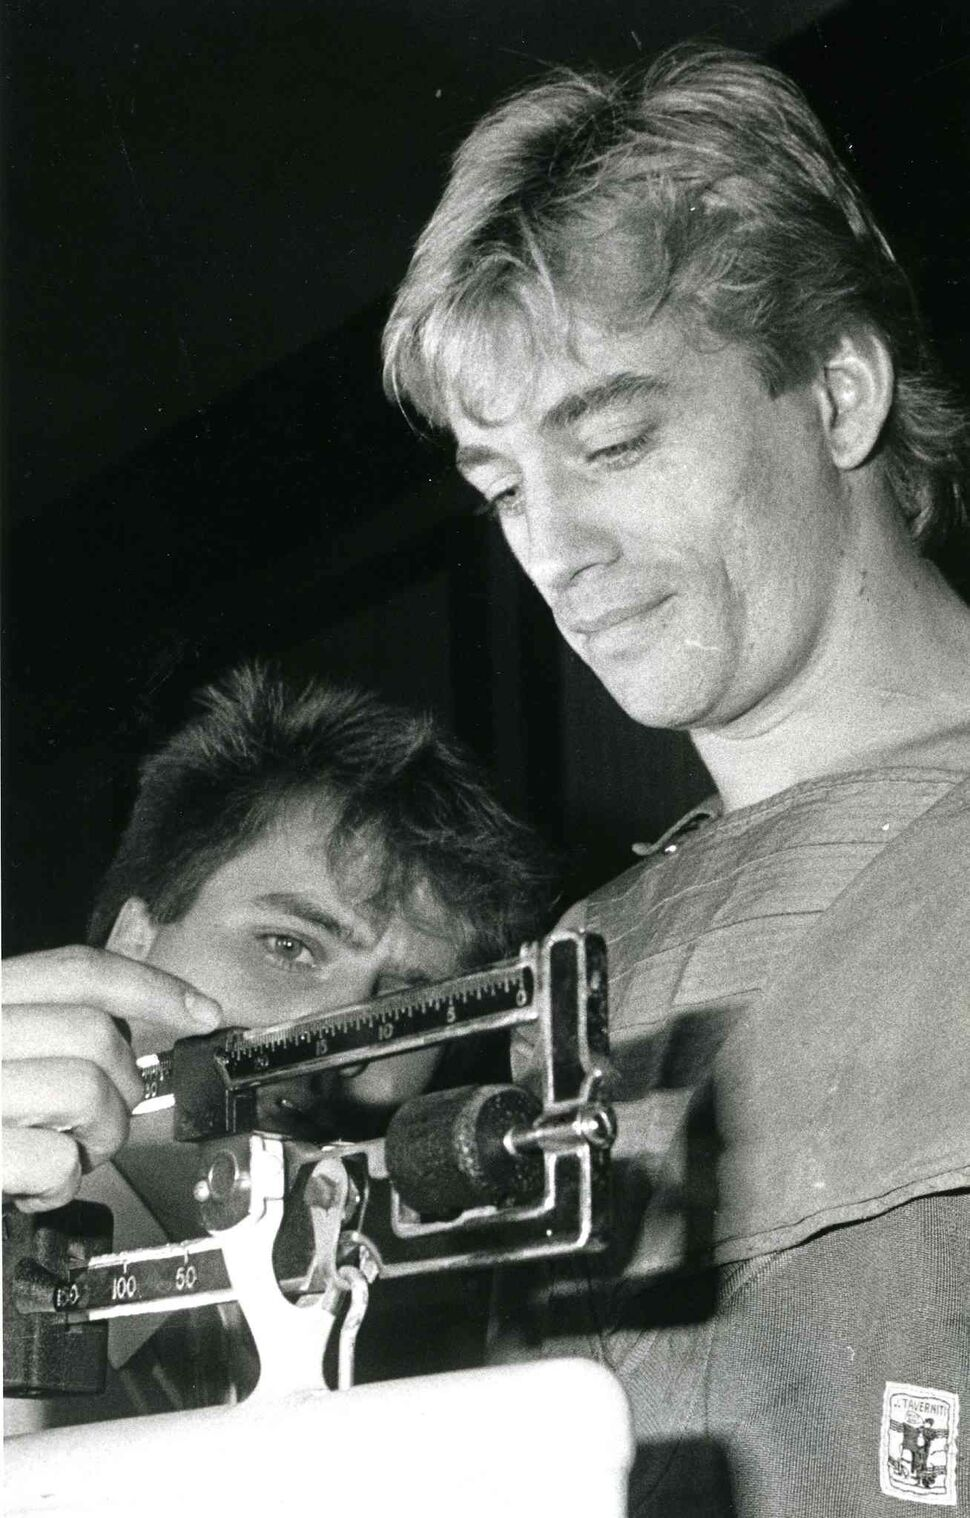 Donny Lalonde weighs in before a fight in 1985. (JIM HAGGARTY / WINNIPEG FREE PRESS FILES)